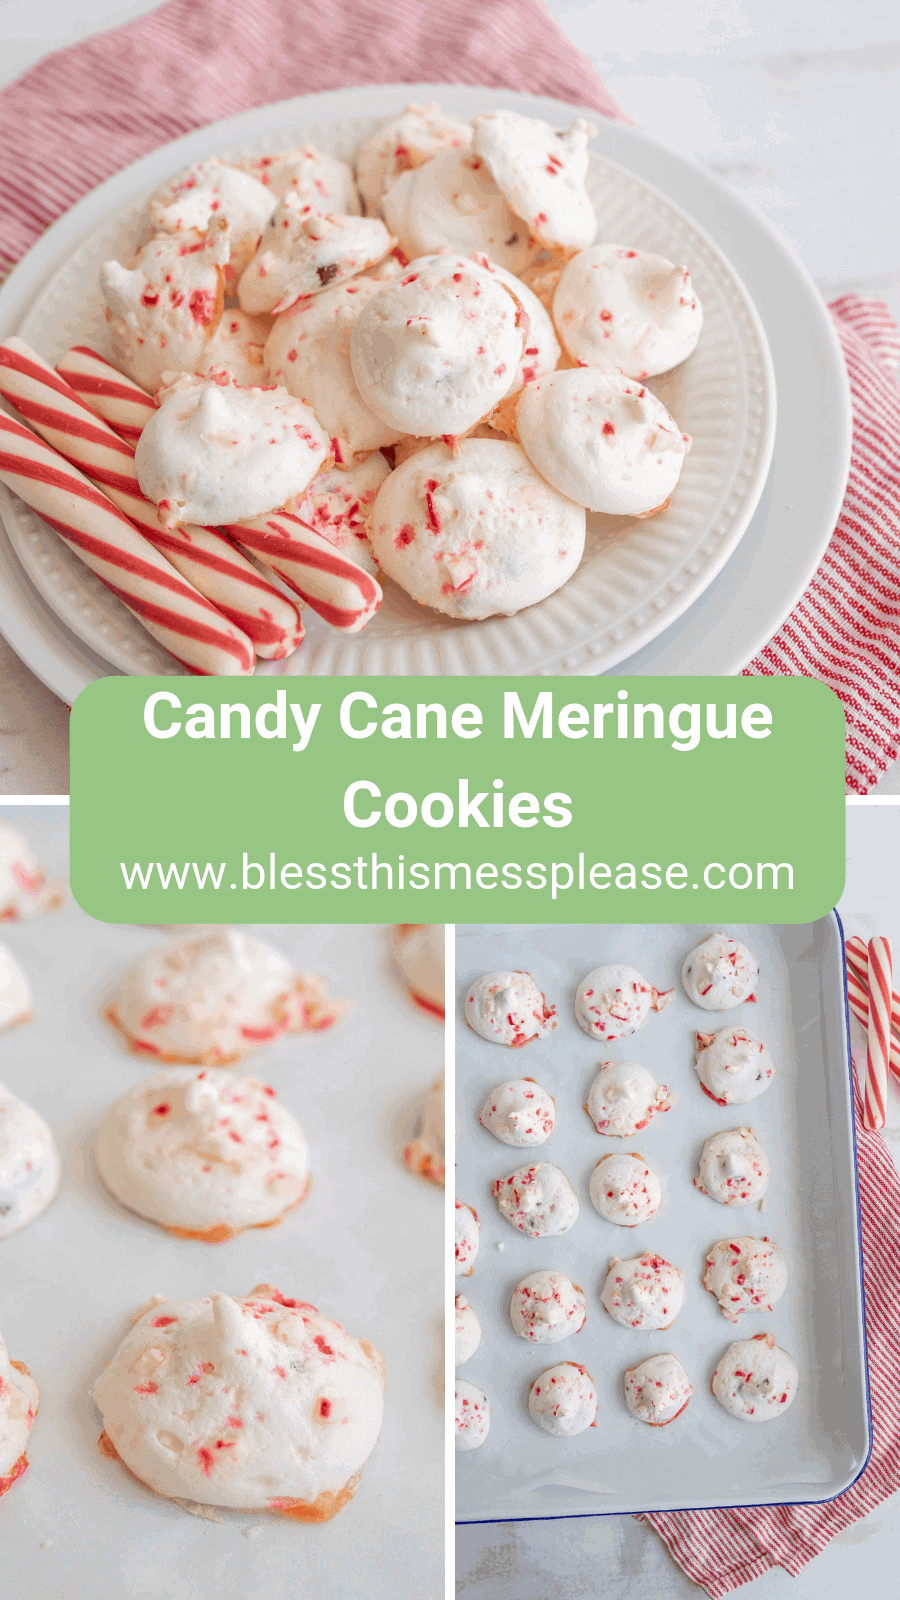 Crunchy and sweet with the perfect balance of chocolate and peppermint, candy cane meringue cookies are the best cookie to make your holiday season more festive and sweet.